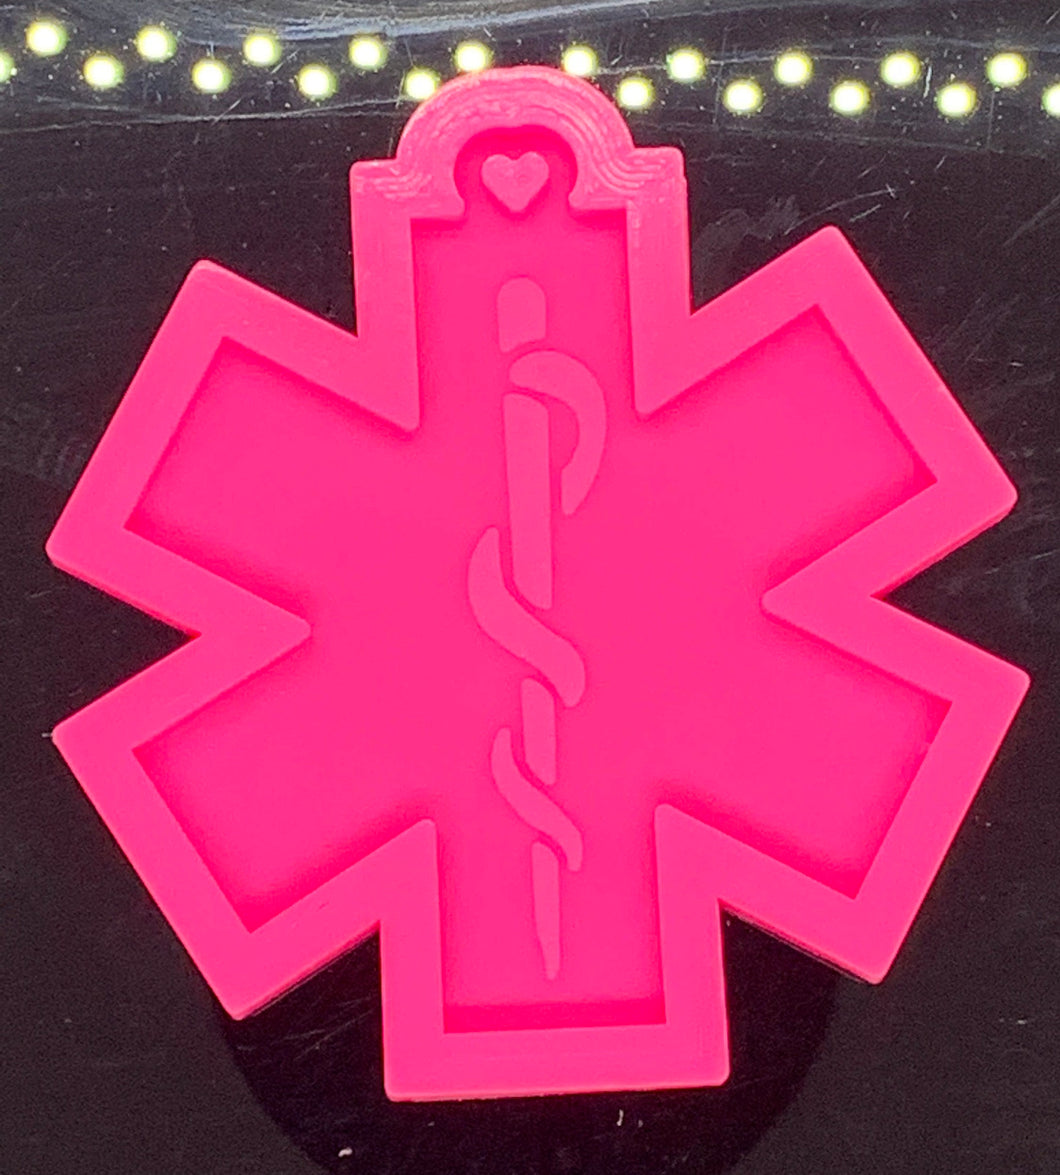 Star of Life mold | shiny silicone | keychain mold